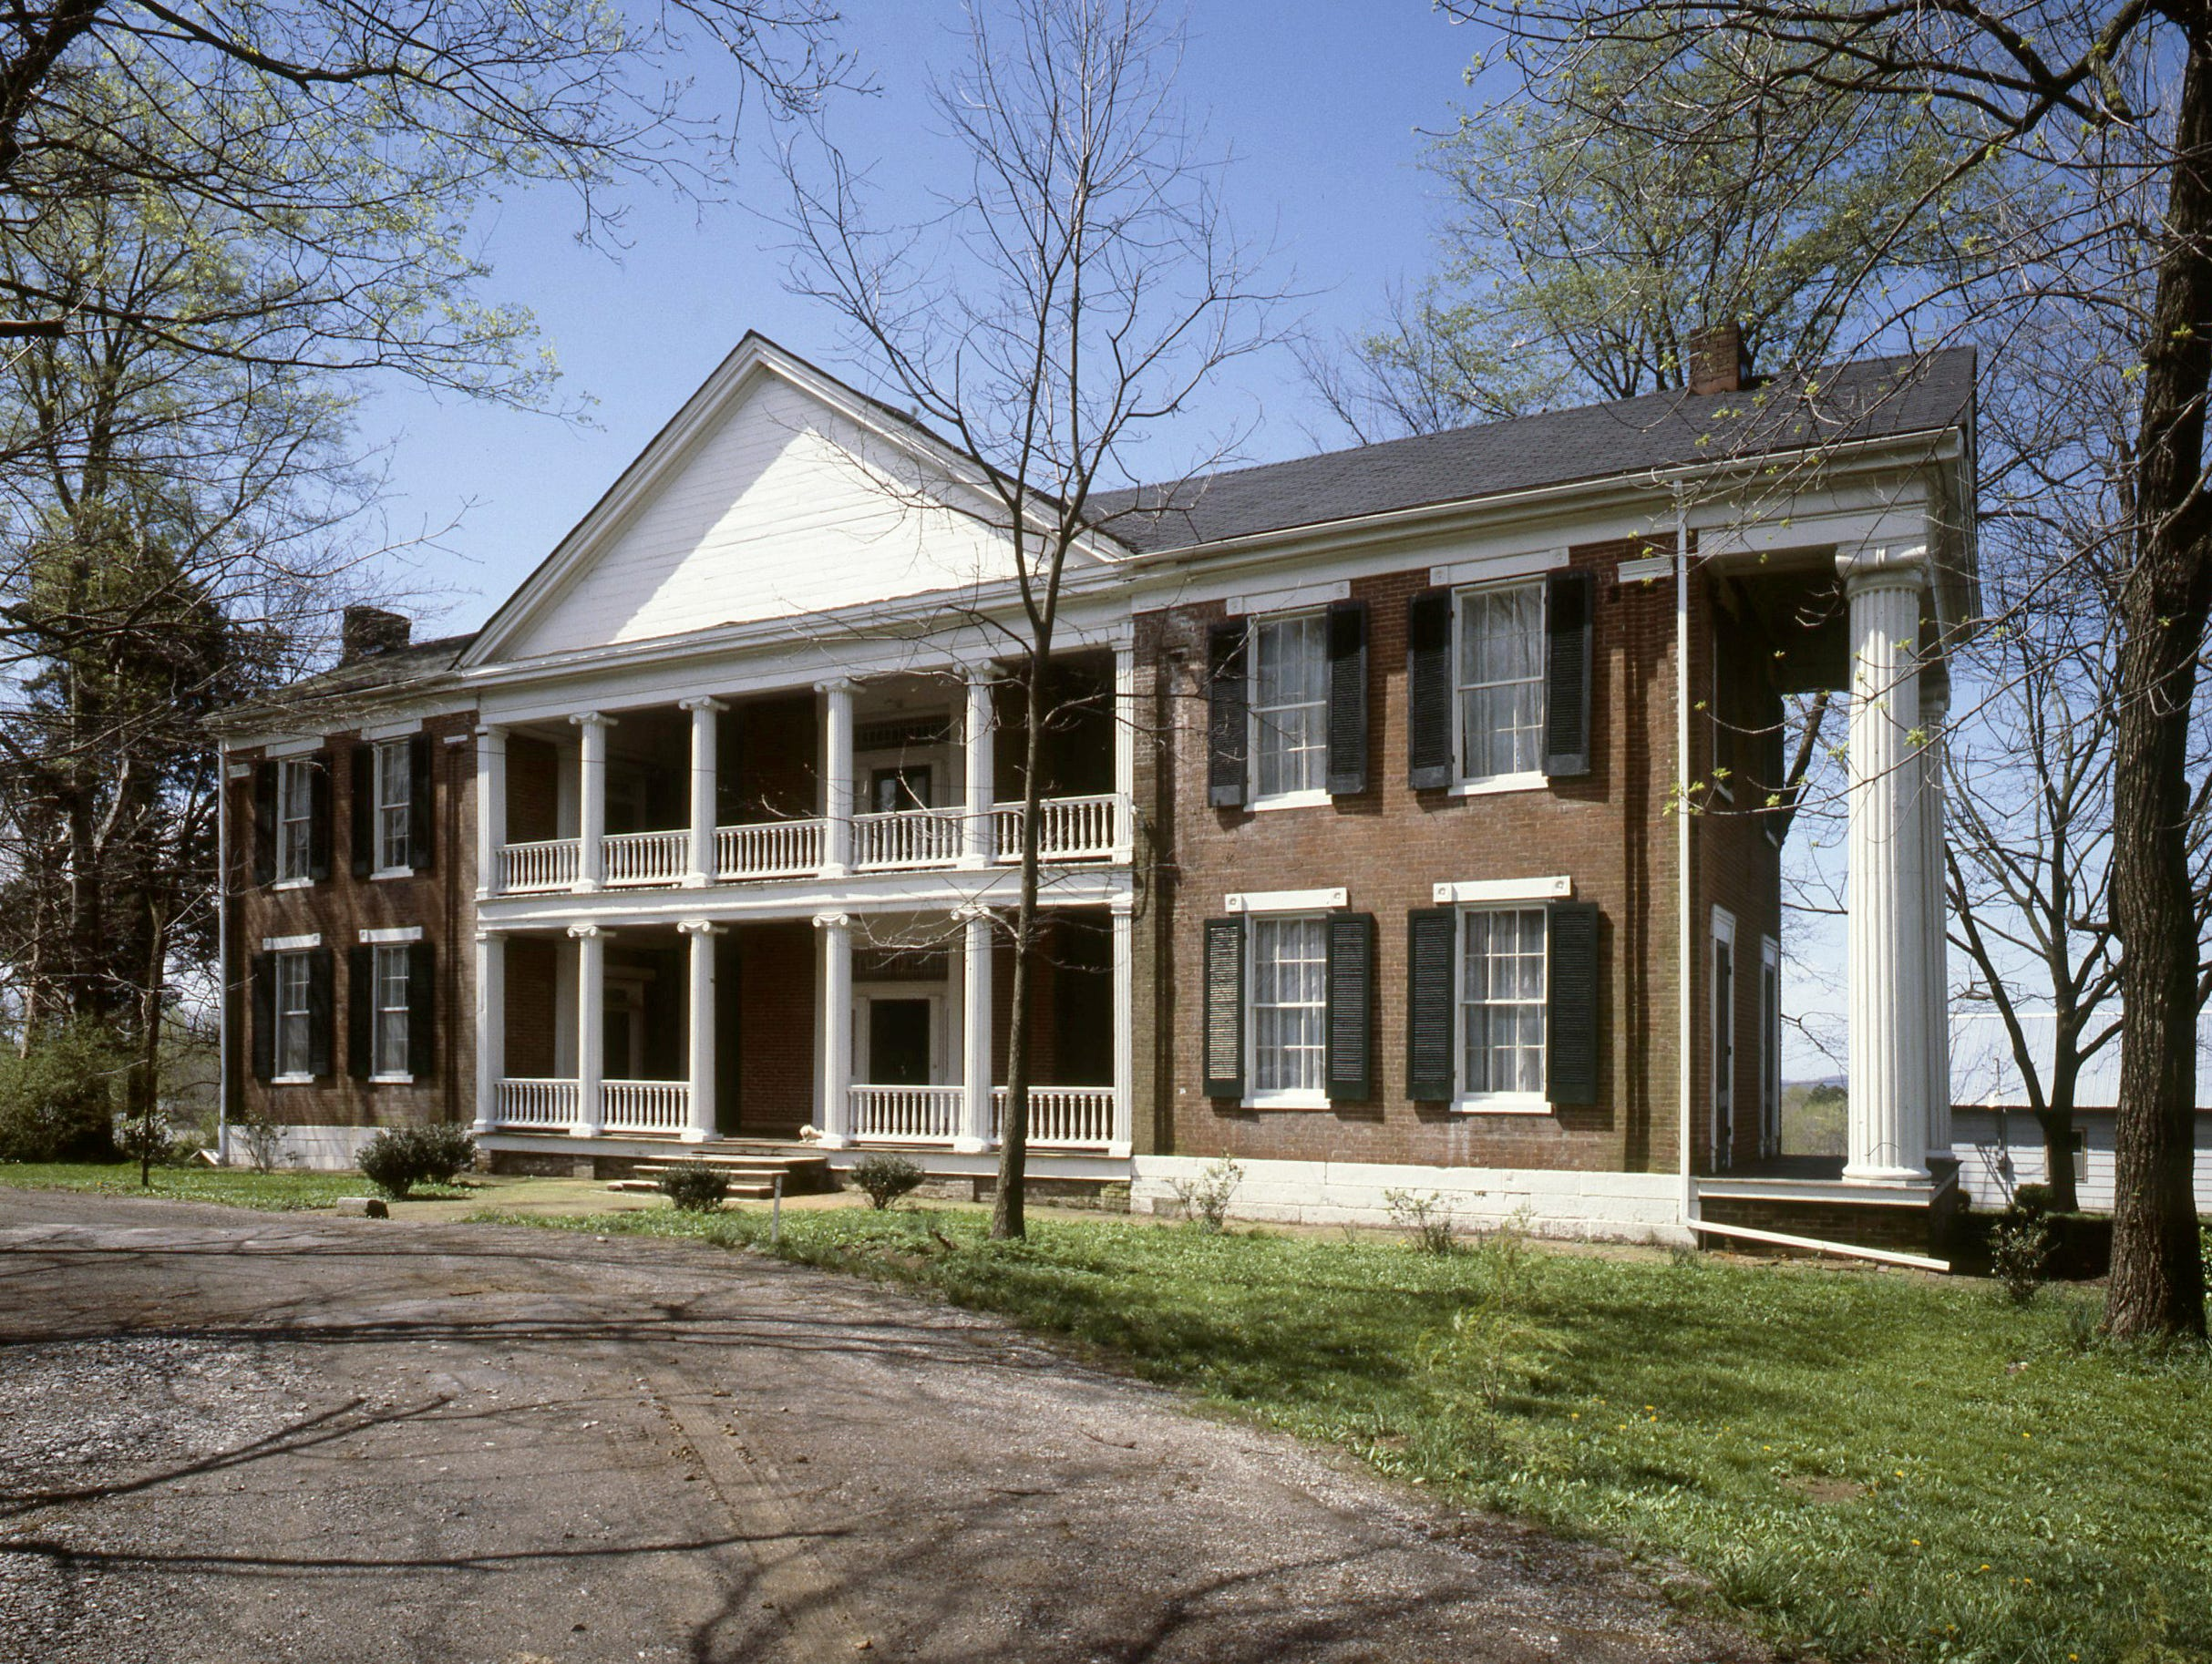 """The """"Rosemont,"""" completed in 1842 and pictured here on April 12, 1979, in Gallatin, was built by Judge Jo Conn Guild, who entertained three presidents there - James K. Polk, Martin Van Buren and Andrew Jackson. The home was inspired by the Creole architecture Guild admired in New Orleans."""